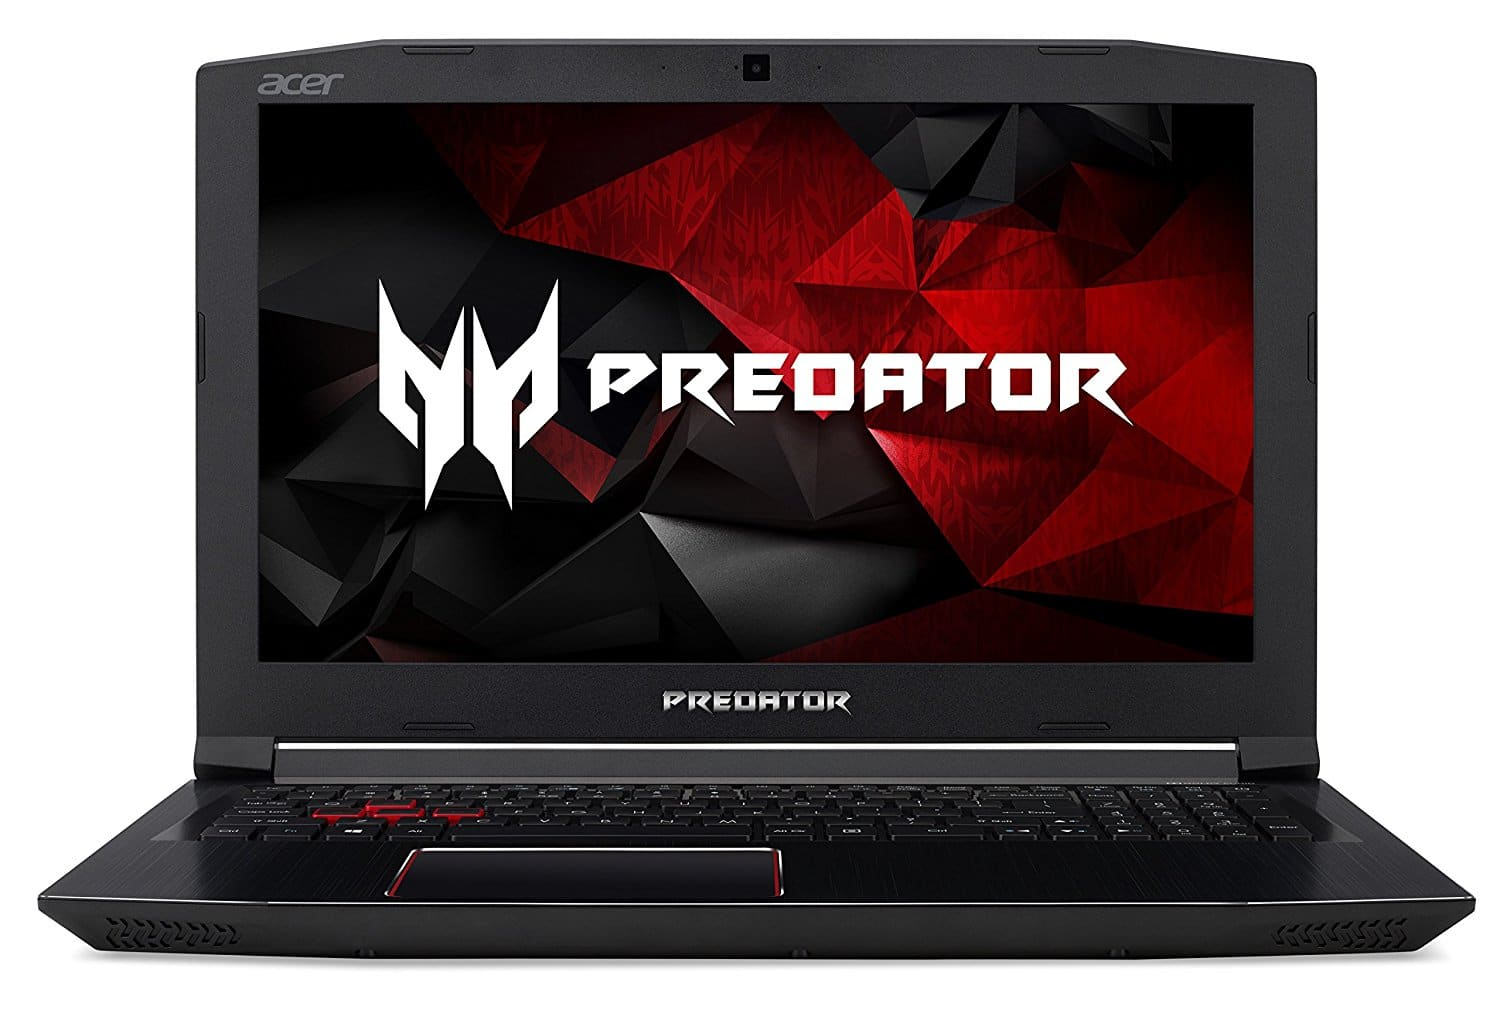 Prime Members: New Acer Predator Helios 300 with FHD IPS, i7-7700HQ, GTX 1060 (6gb), 16gb DDR4, 256gb SSD for $899.99 + FS at Amazon